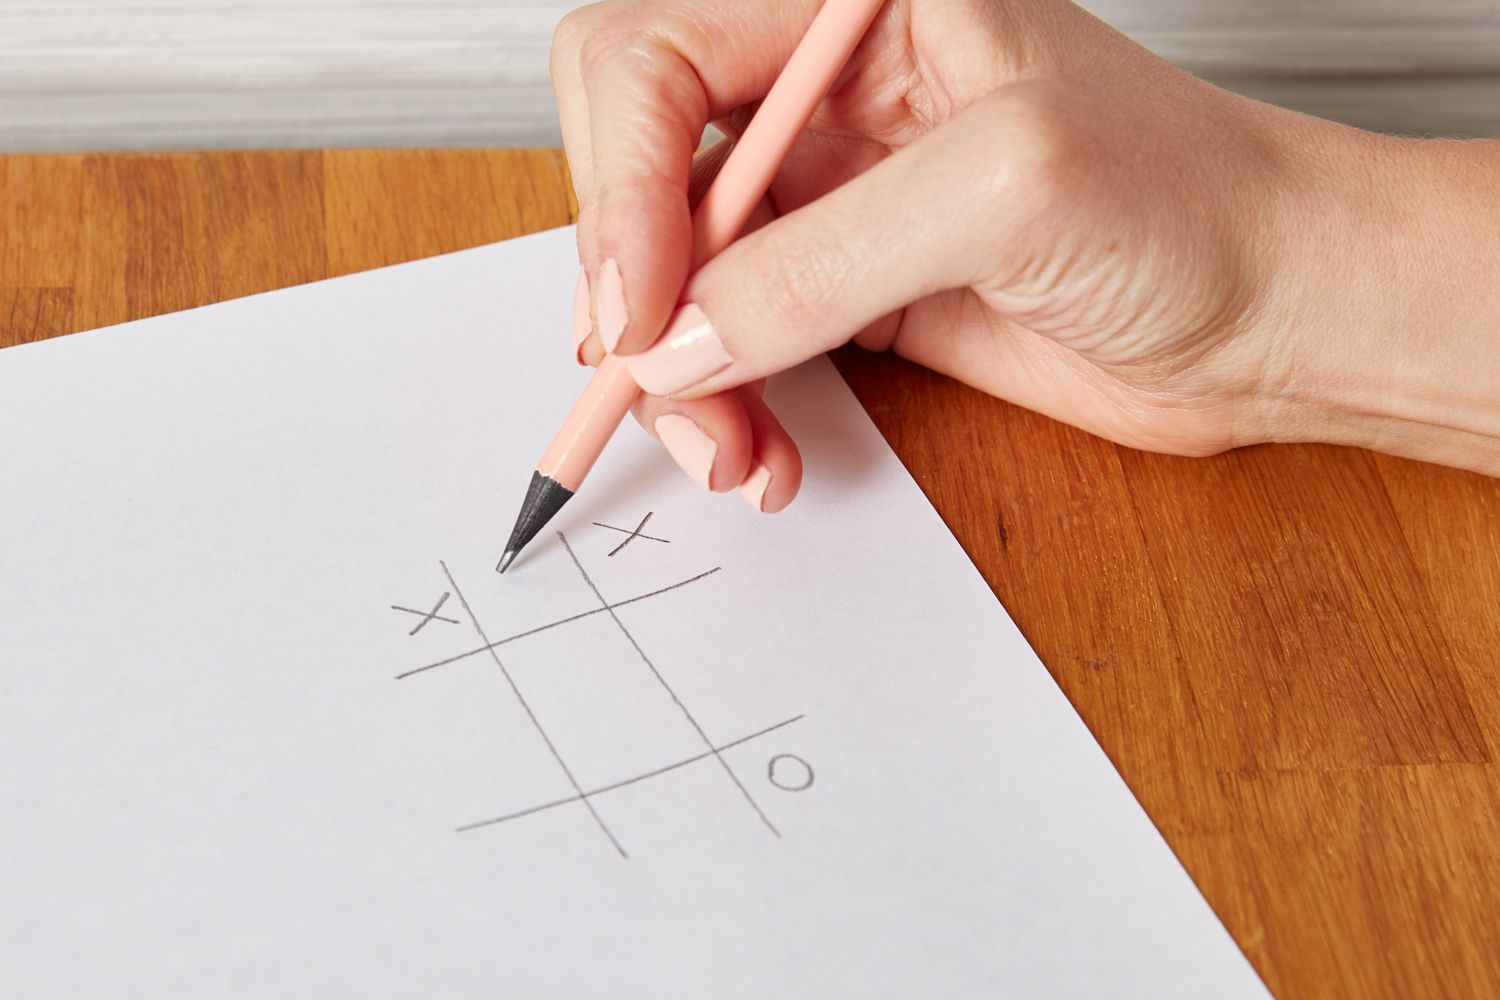 Learn Tic Tac Toe Game Rules With Variants